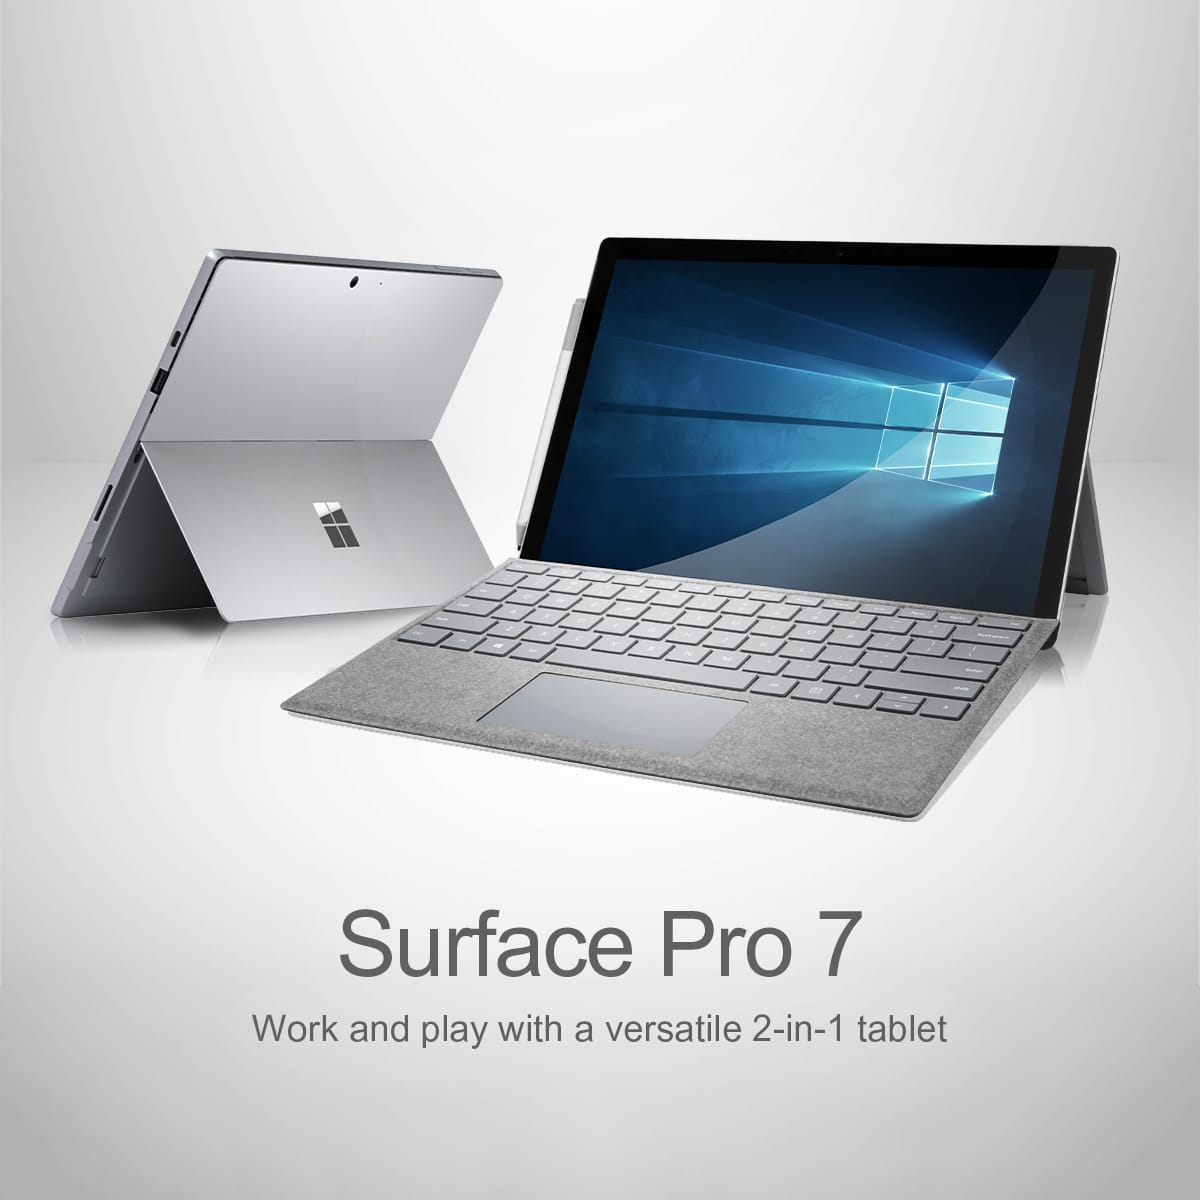 Work and play with the new Microsoft Surface Pro 7 – a versatile 2-in-1 tablet!